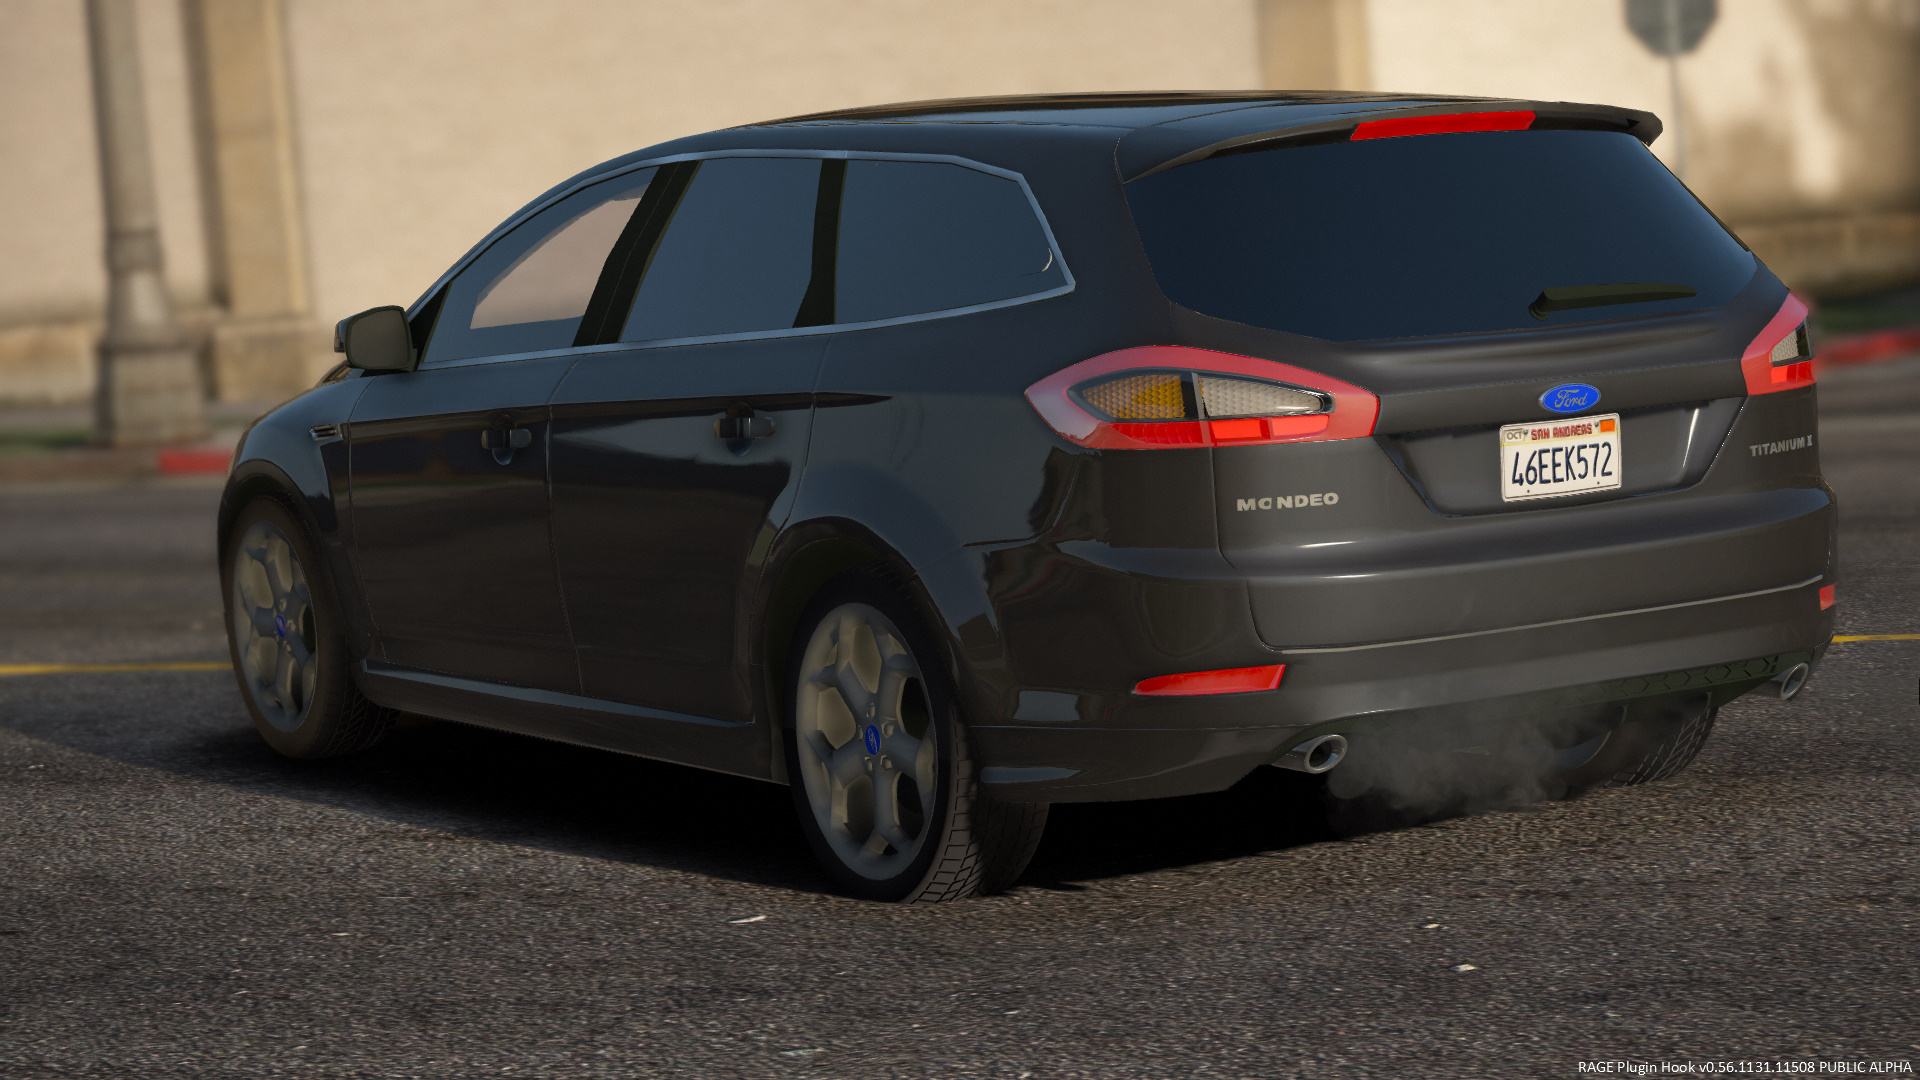 2012 ford mondeo mk4 titaniumx station wagon replace gta5. Black Bedroom Furniture Sets. Home Design Ideas